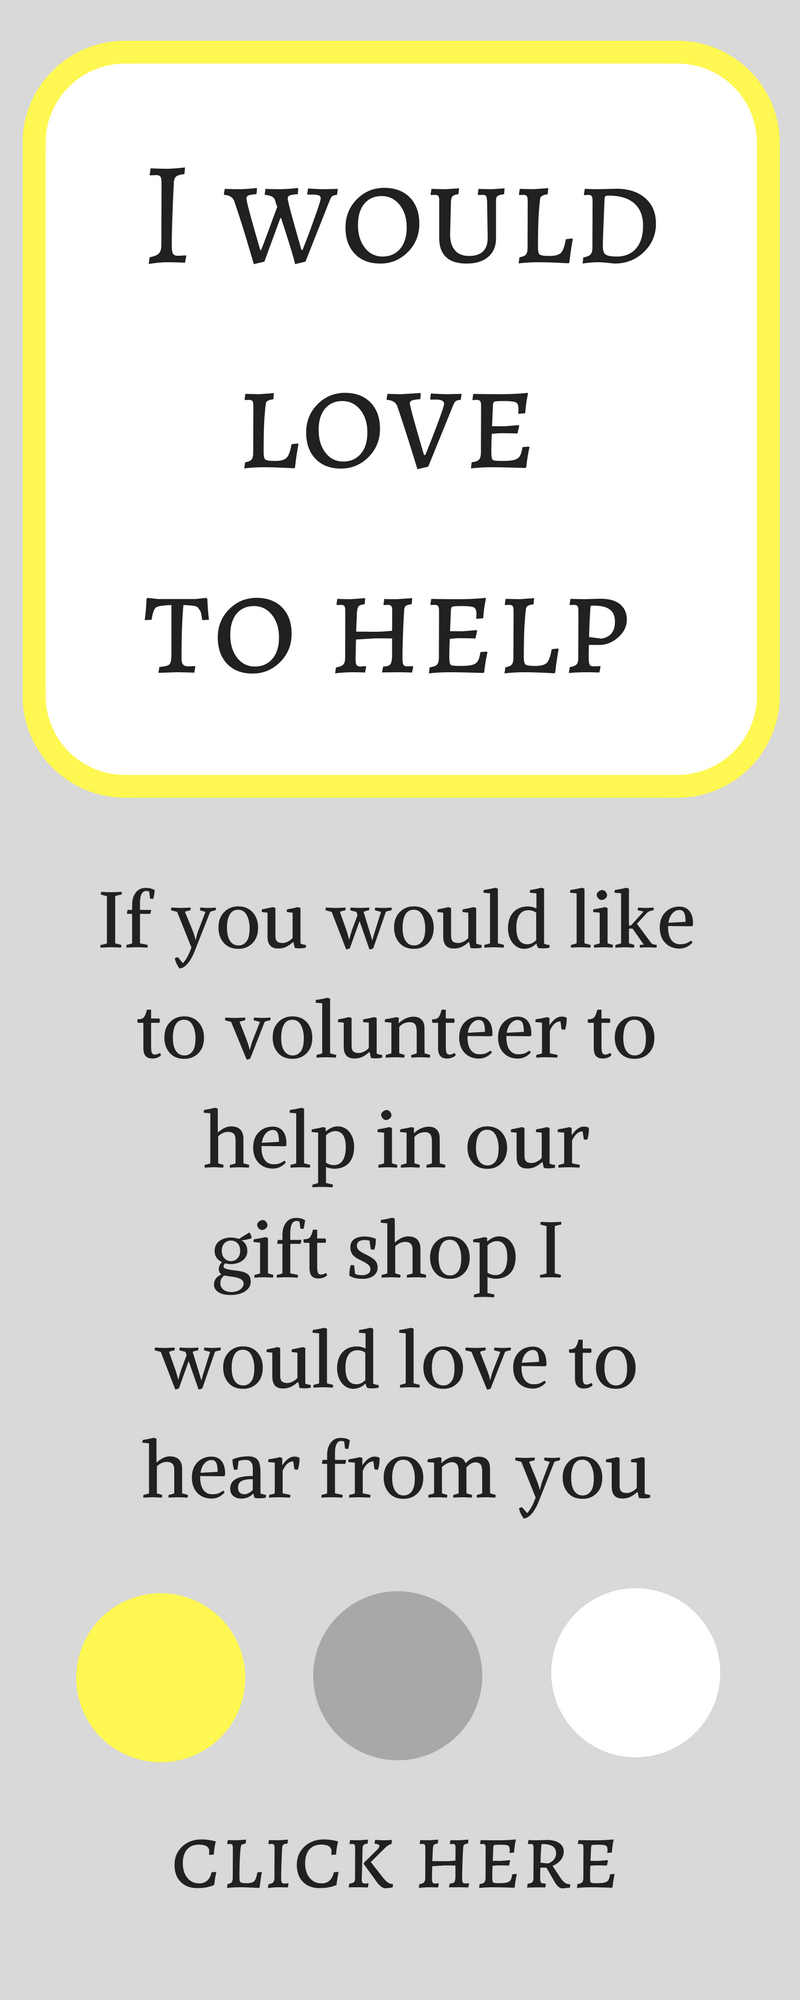 I would love to help in the gift shop